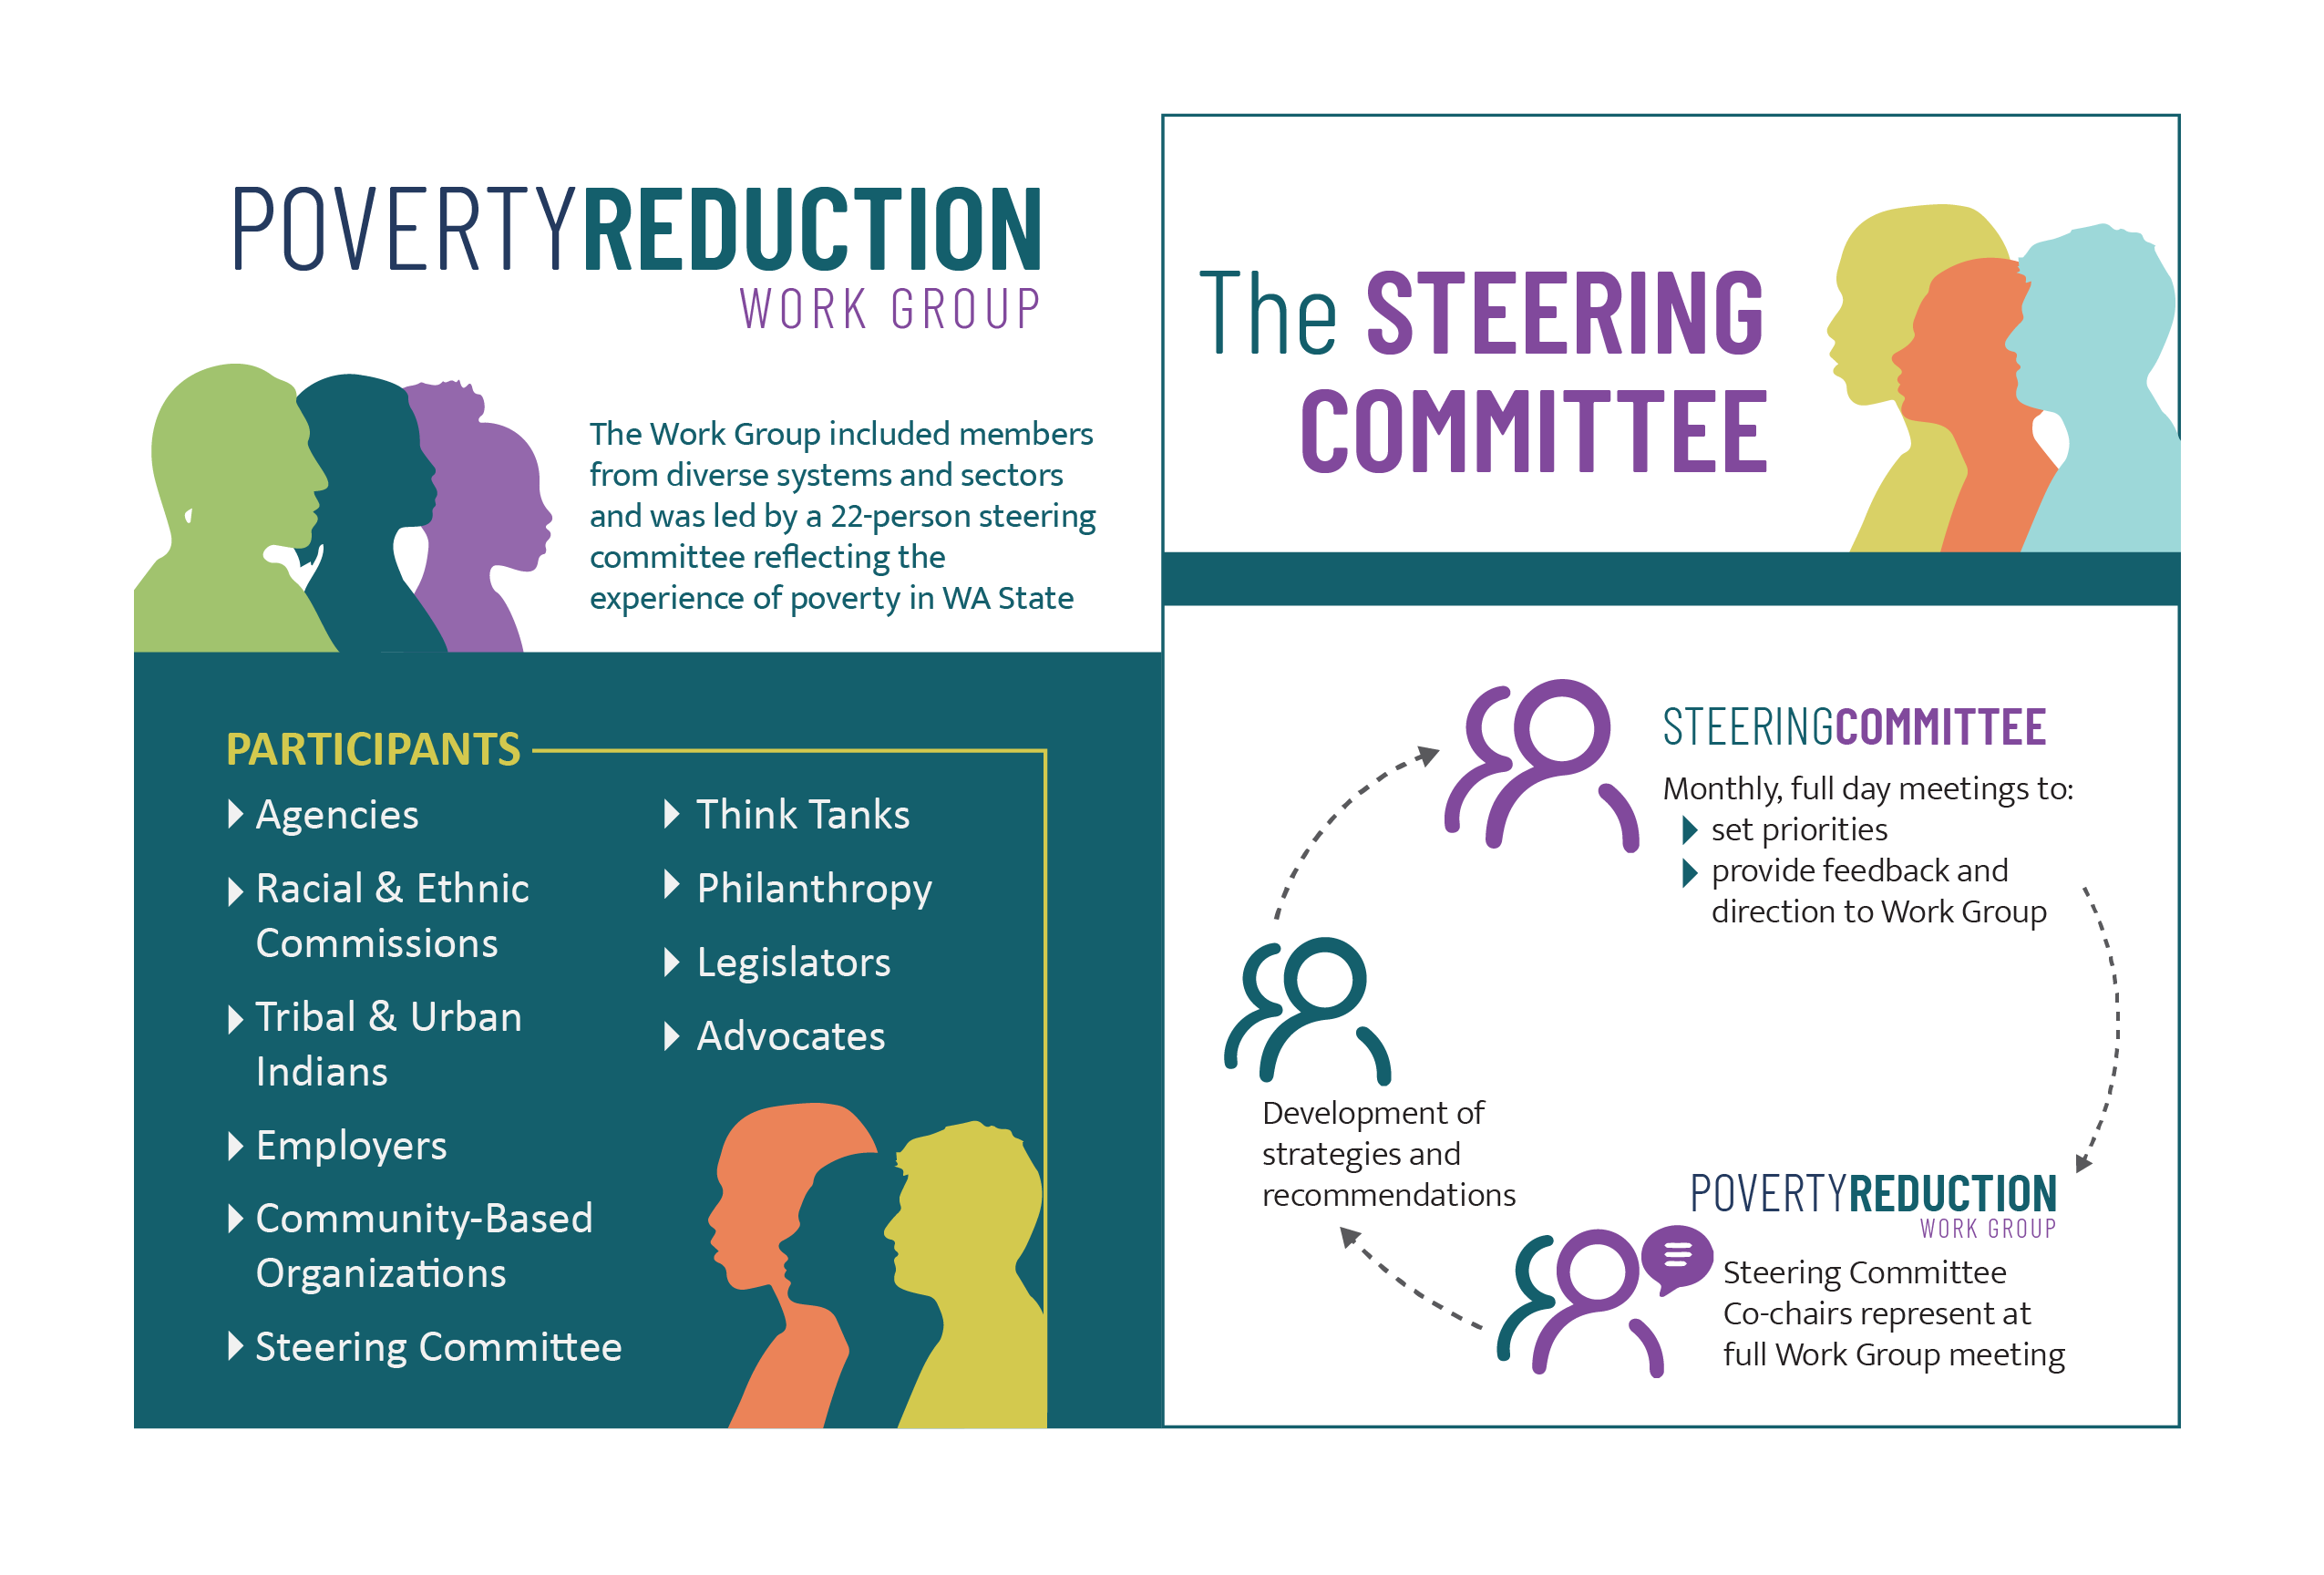 Poverty Reduction Work Group makeup and process